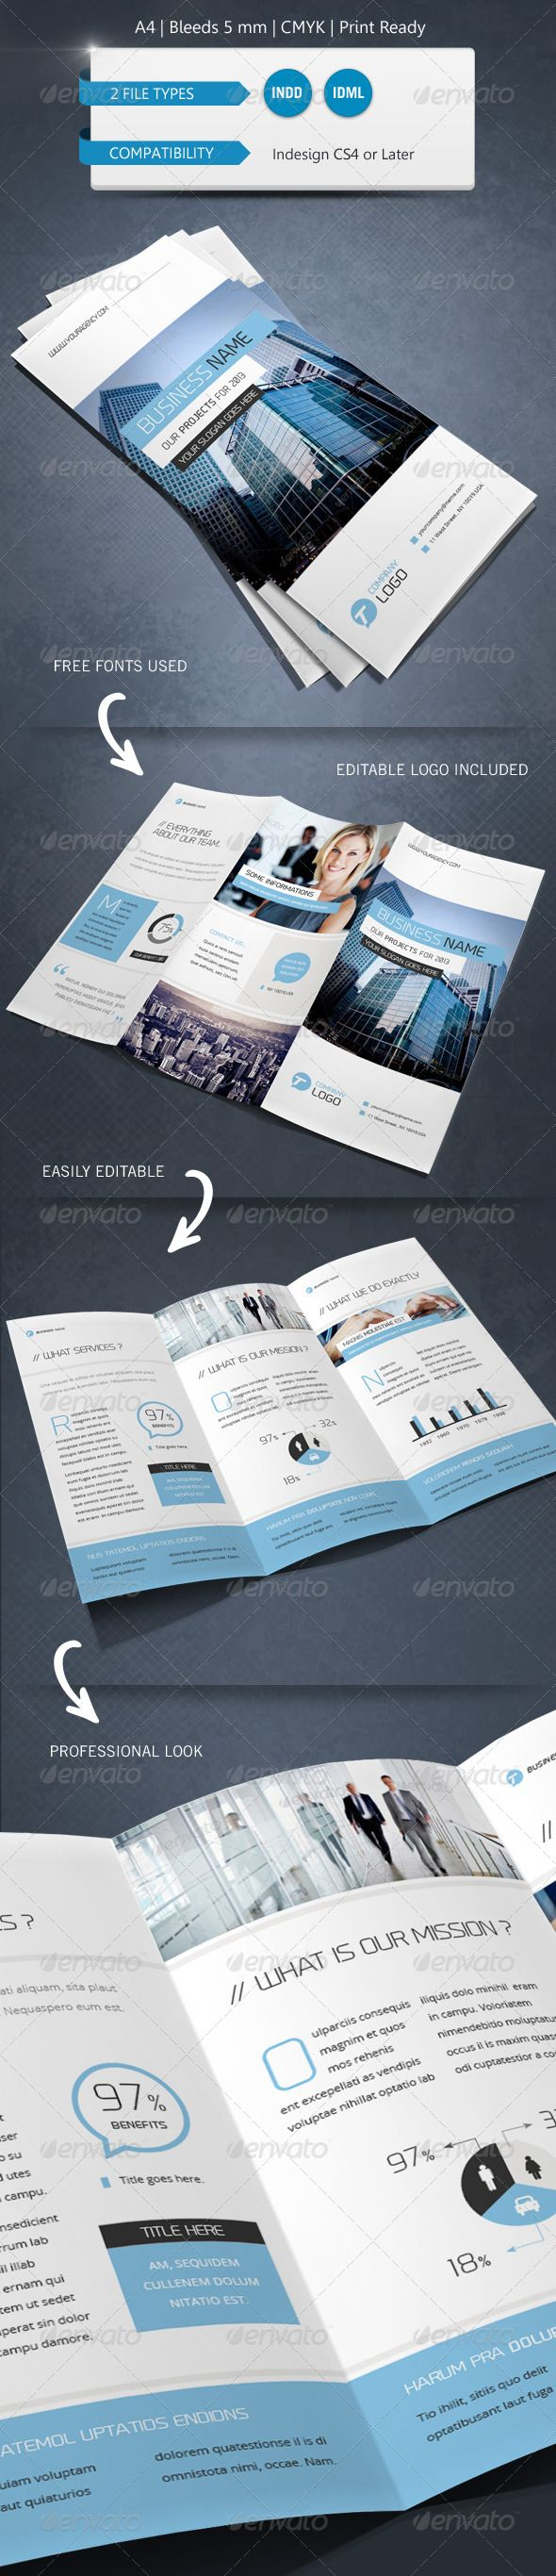 Corporate Indesign Trifold Brochure Template - Corporate Brochures